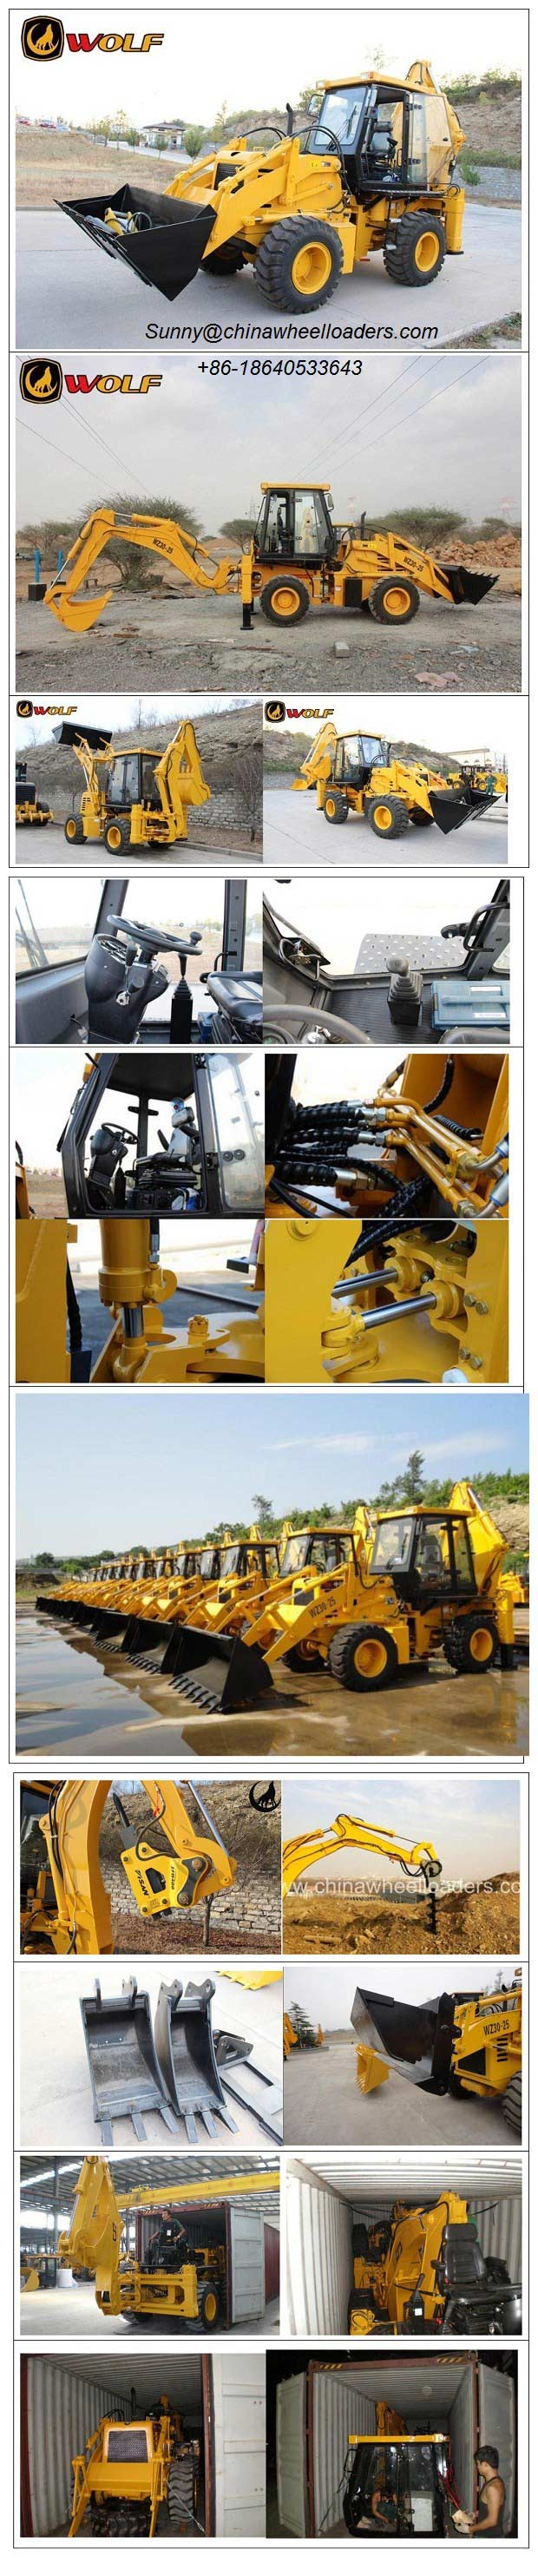 wheel loader spare parts, other any loader attachments is also available